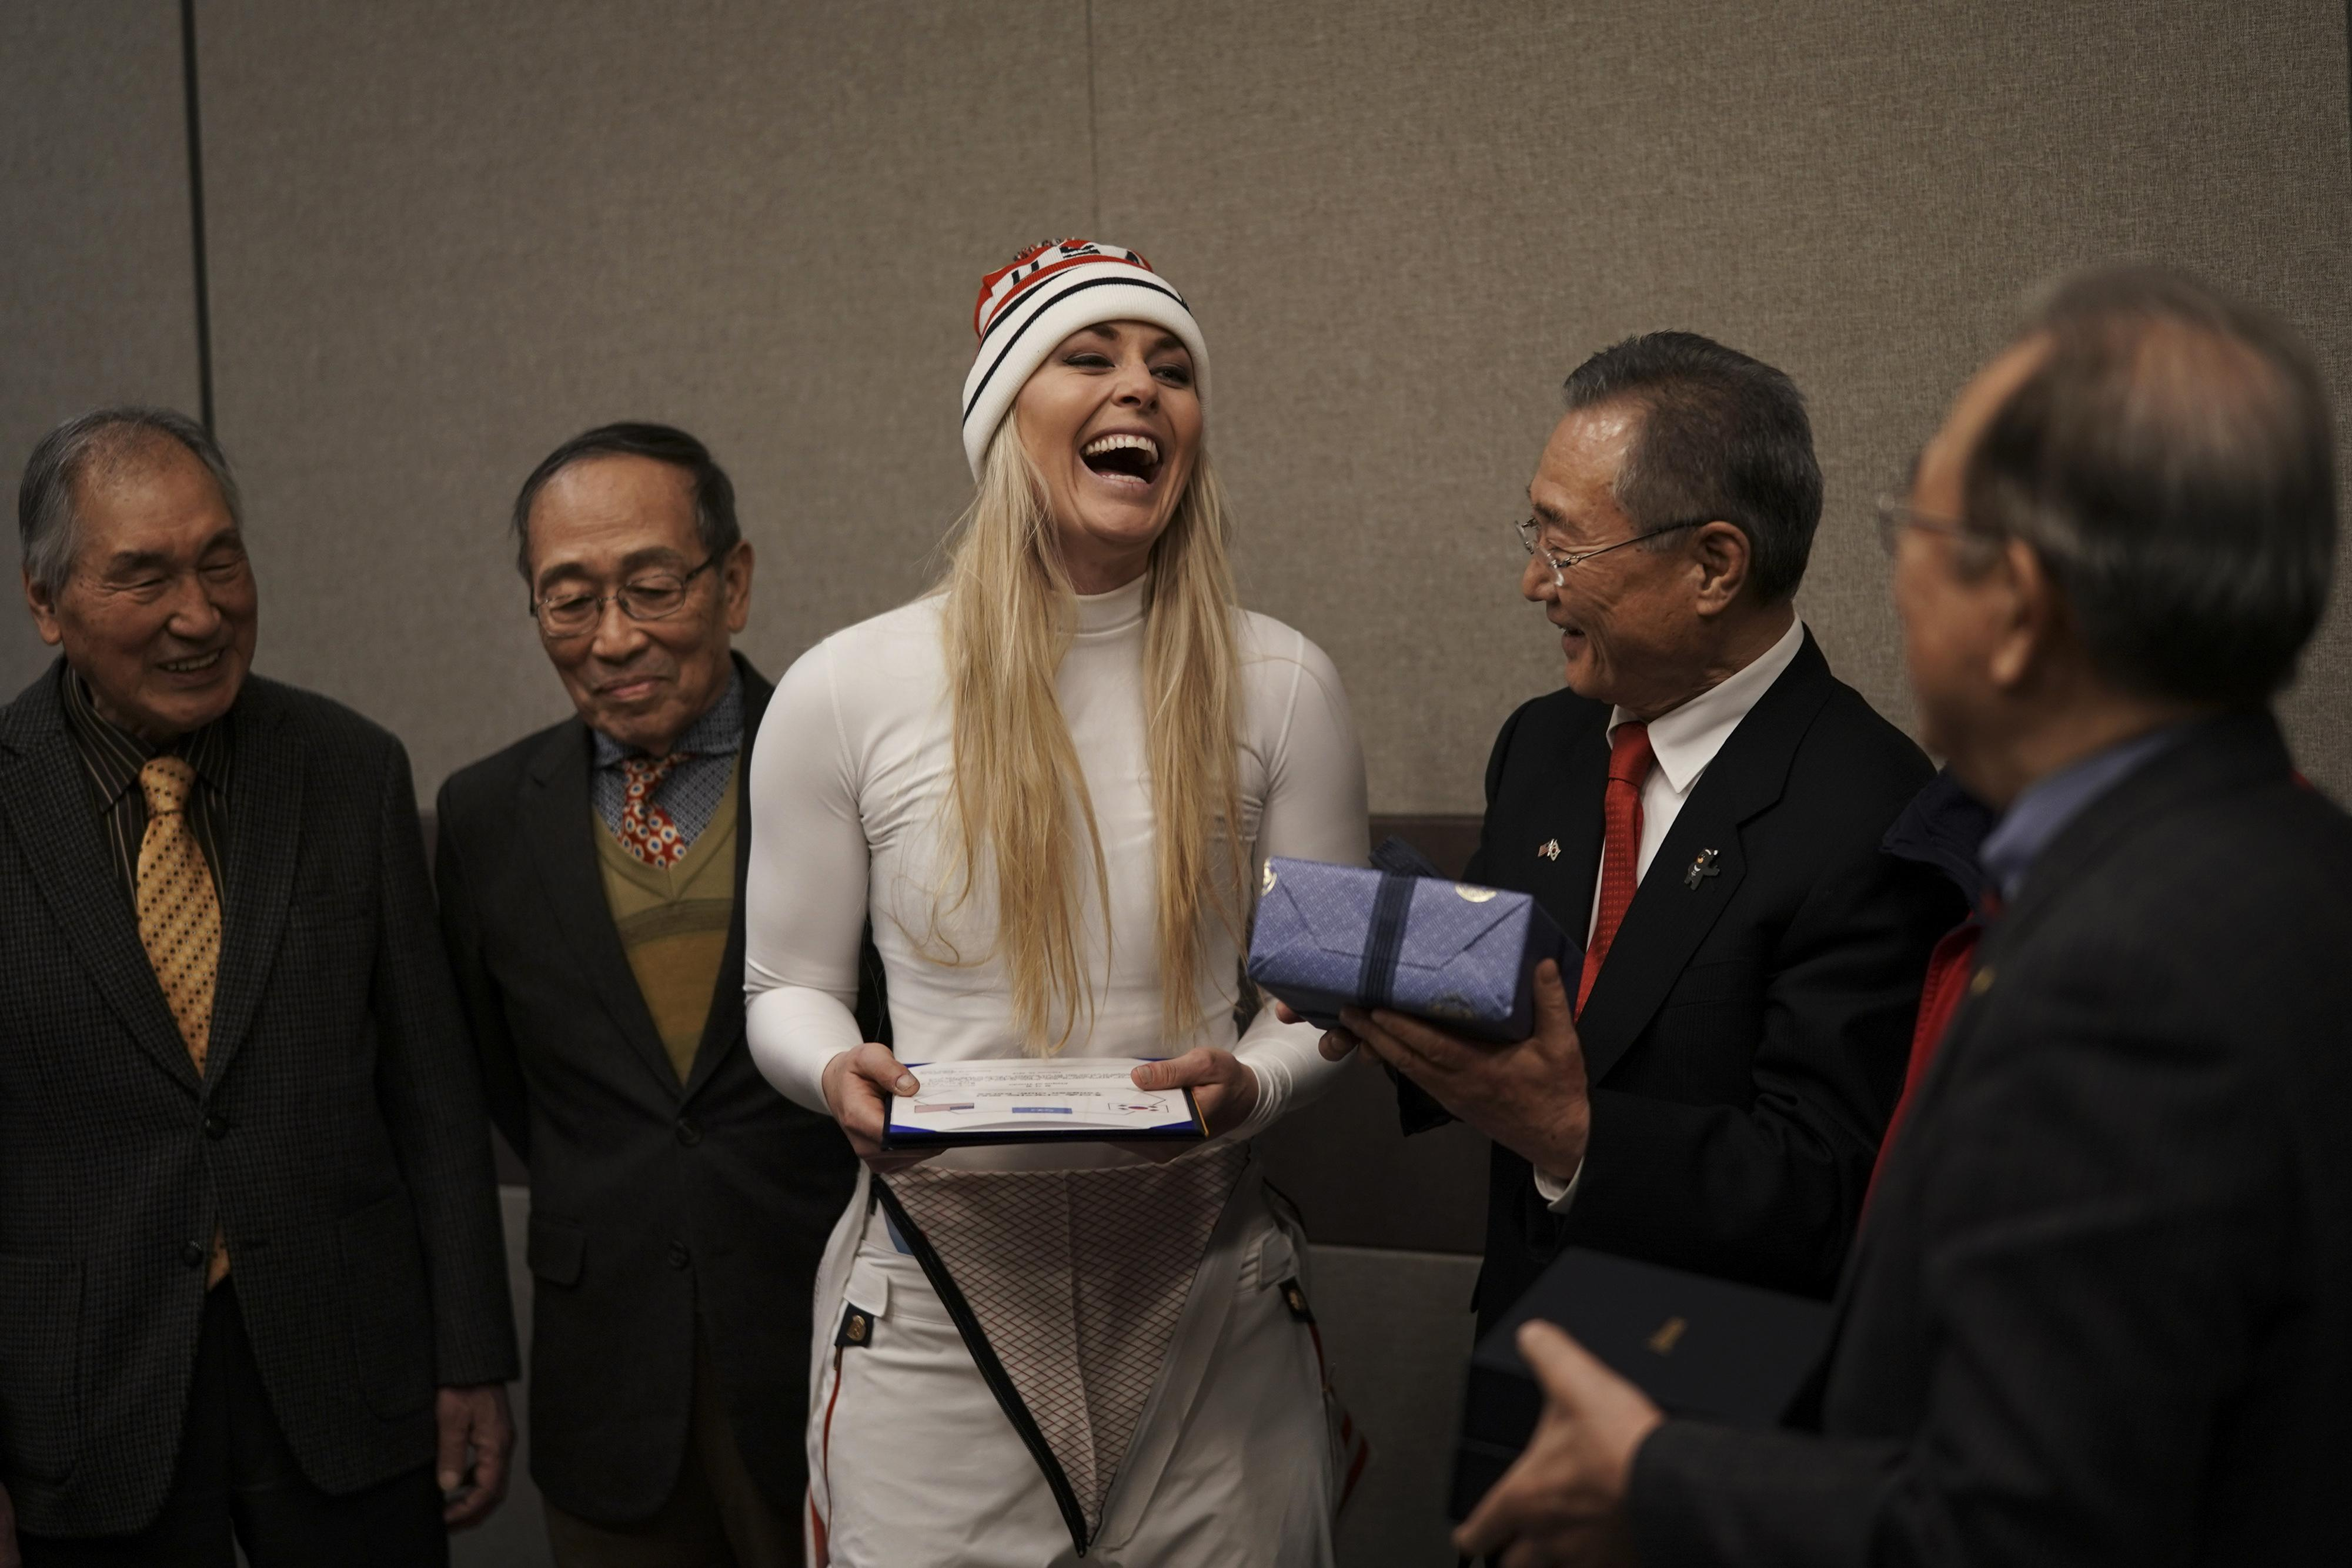 Lindsey Vonn's grandfather was part of the American army that defended South Korea